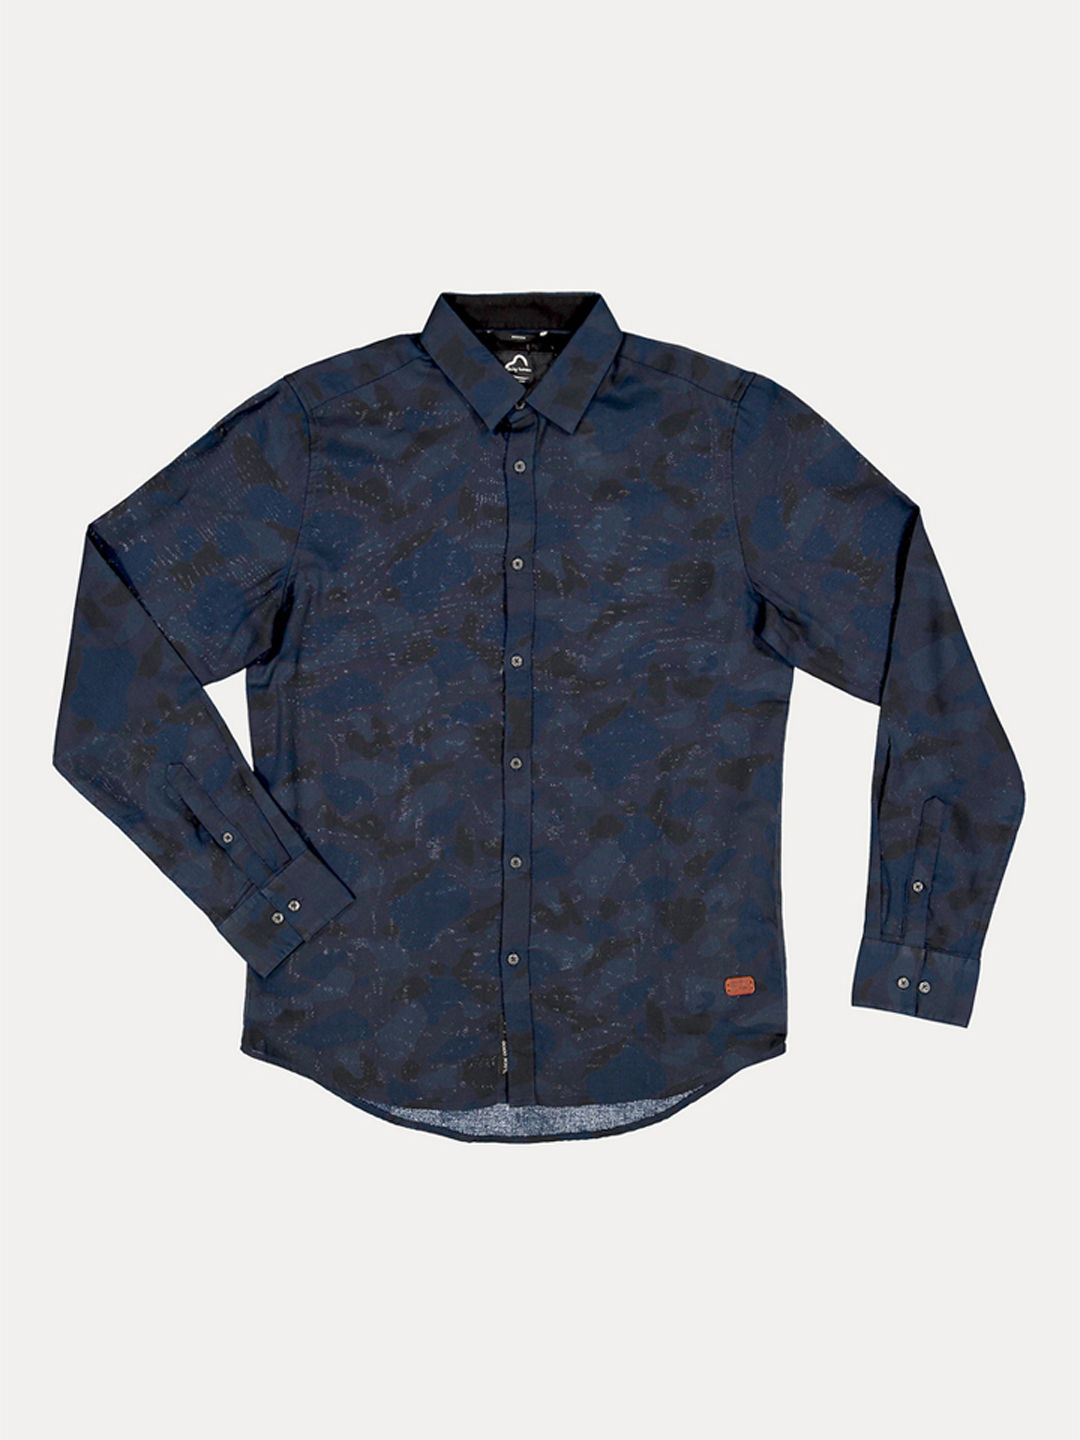 BLACK AND BLUE PRINTED CASUAL SHIRT